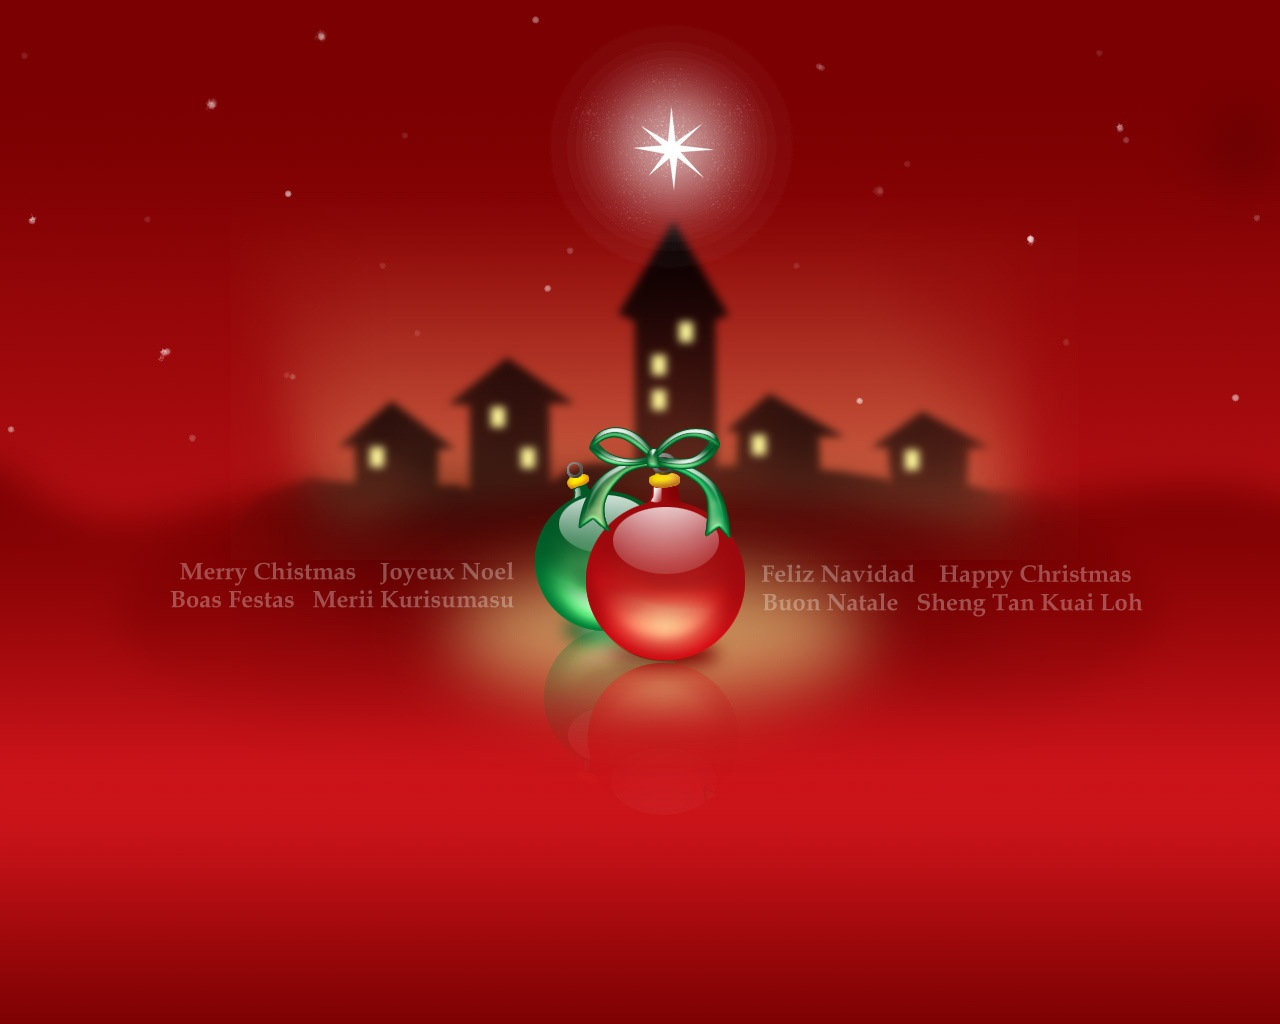 Merry Christmas Red Wallpapers Merry Christmas Red Stock